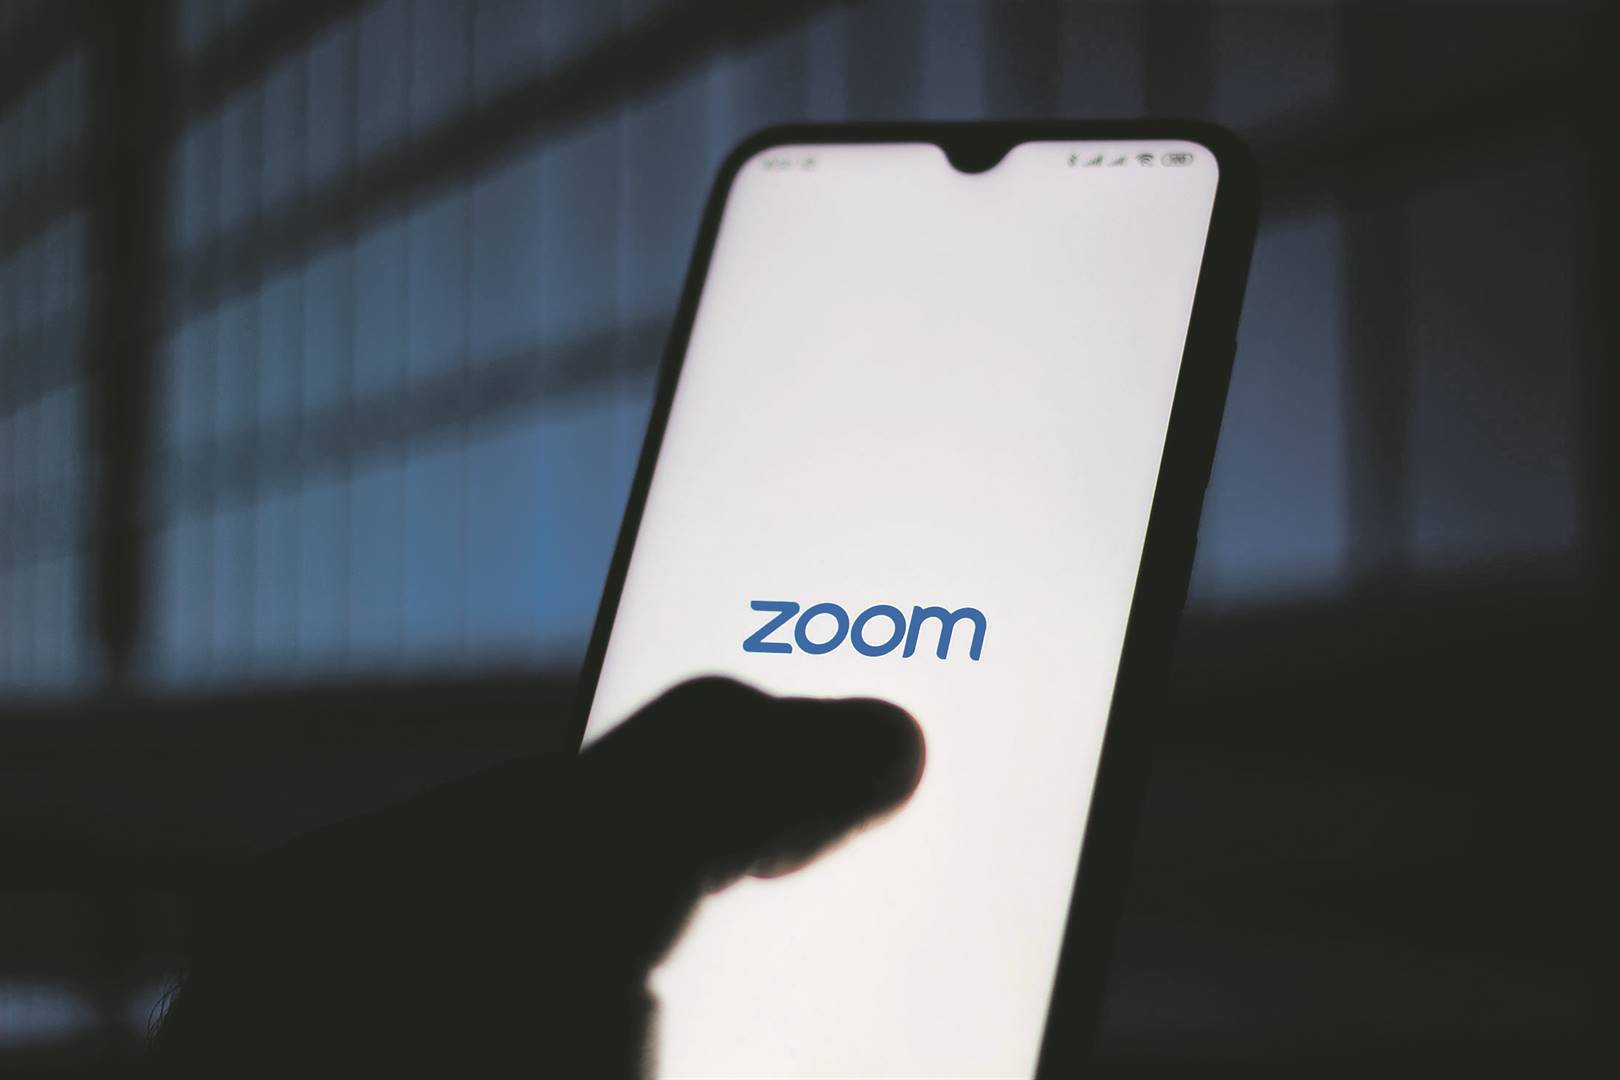 Take Zoom has gone from 20 million daily users to 200 million daily users in two months, increasing its value by $36 billion